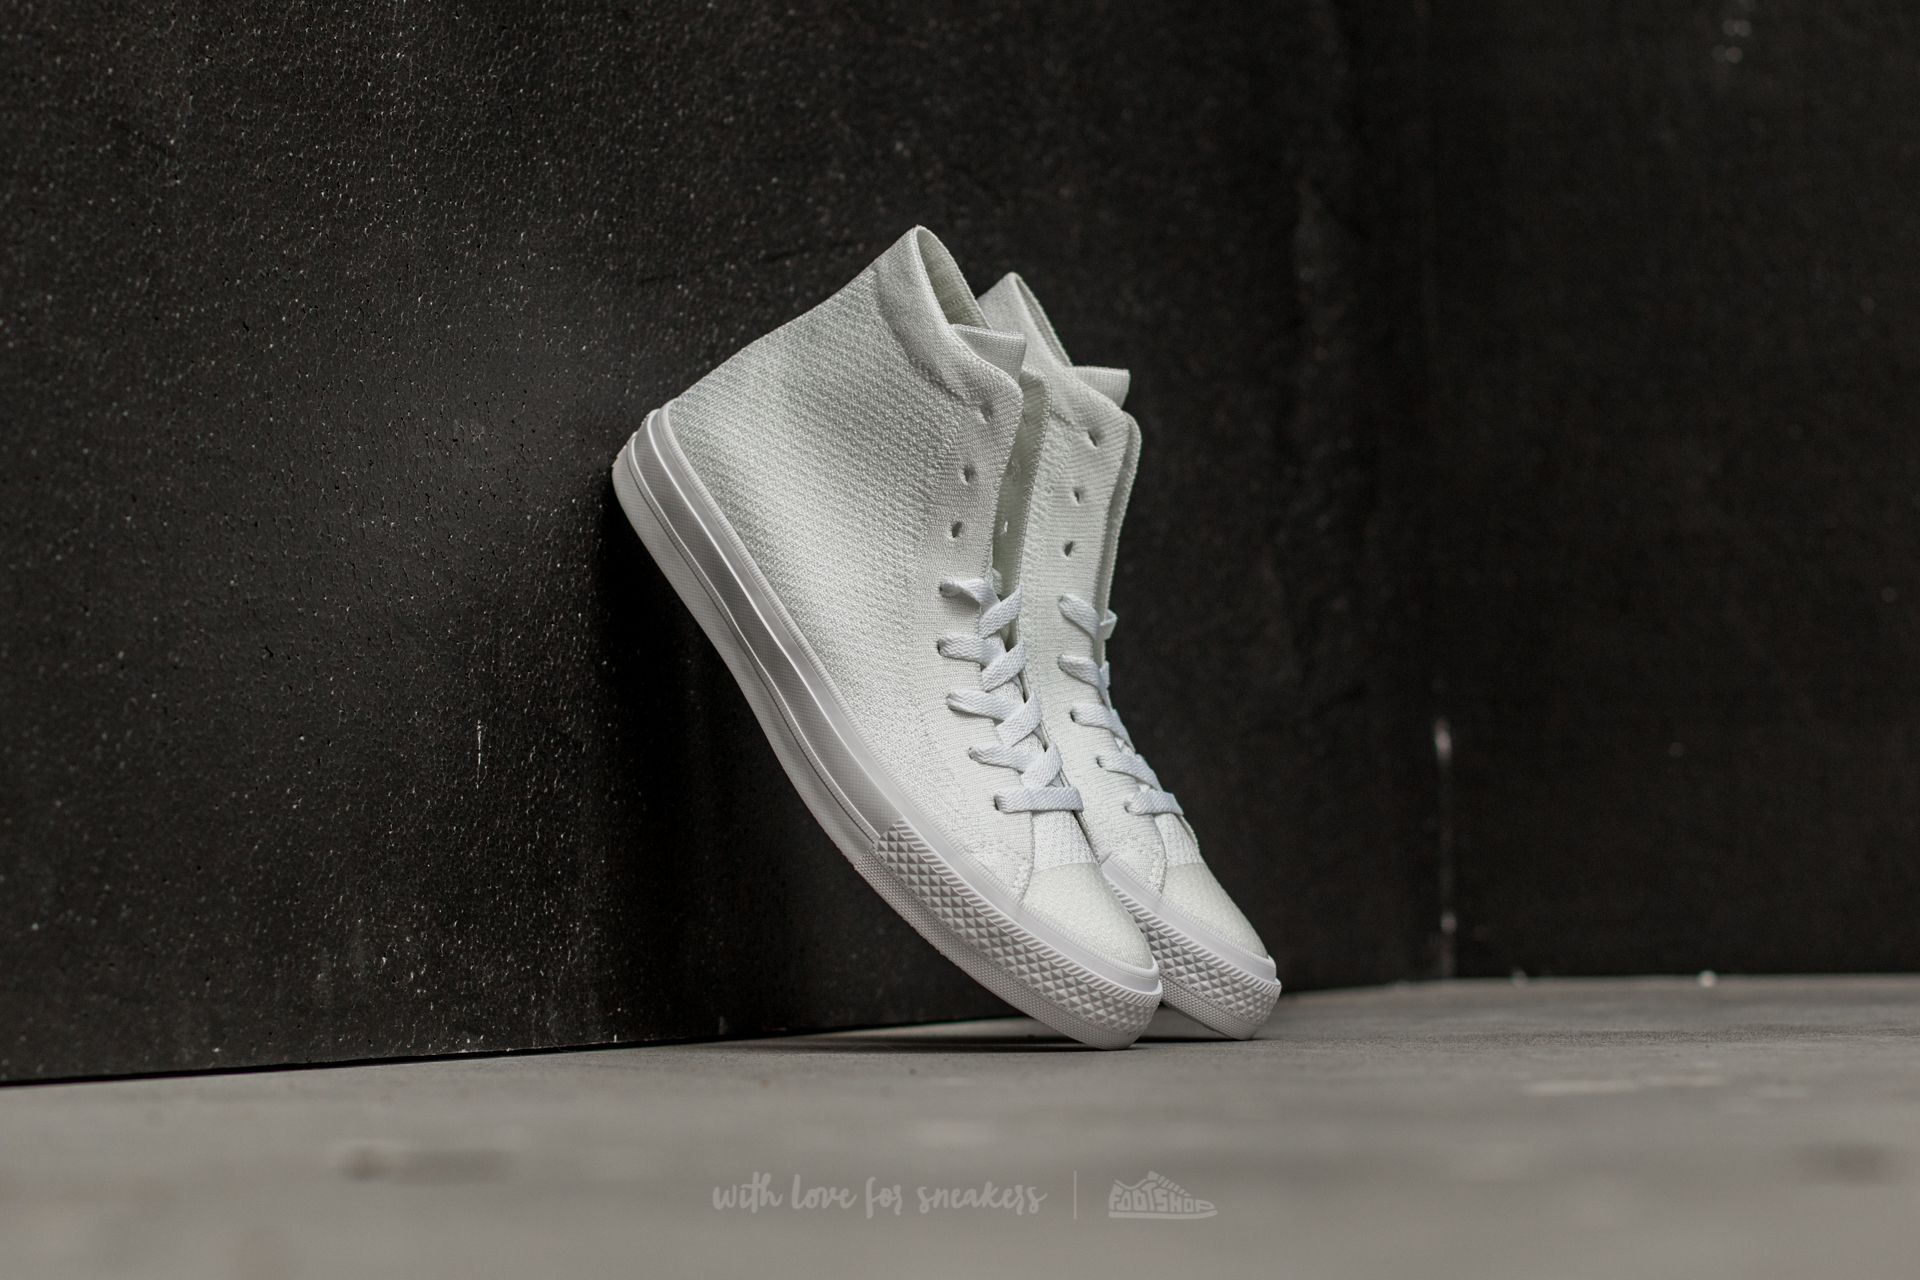 313c0898f93 Converse Chuck Taylor All Star II Flyknit Hi White  White  White ...